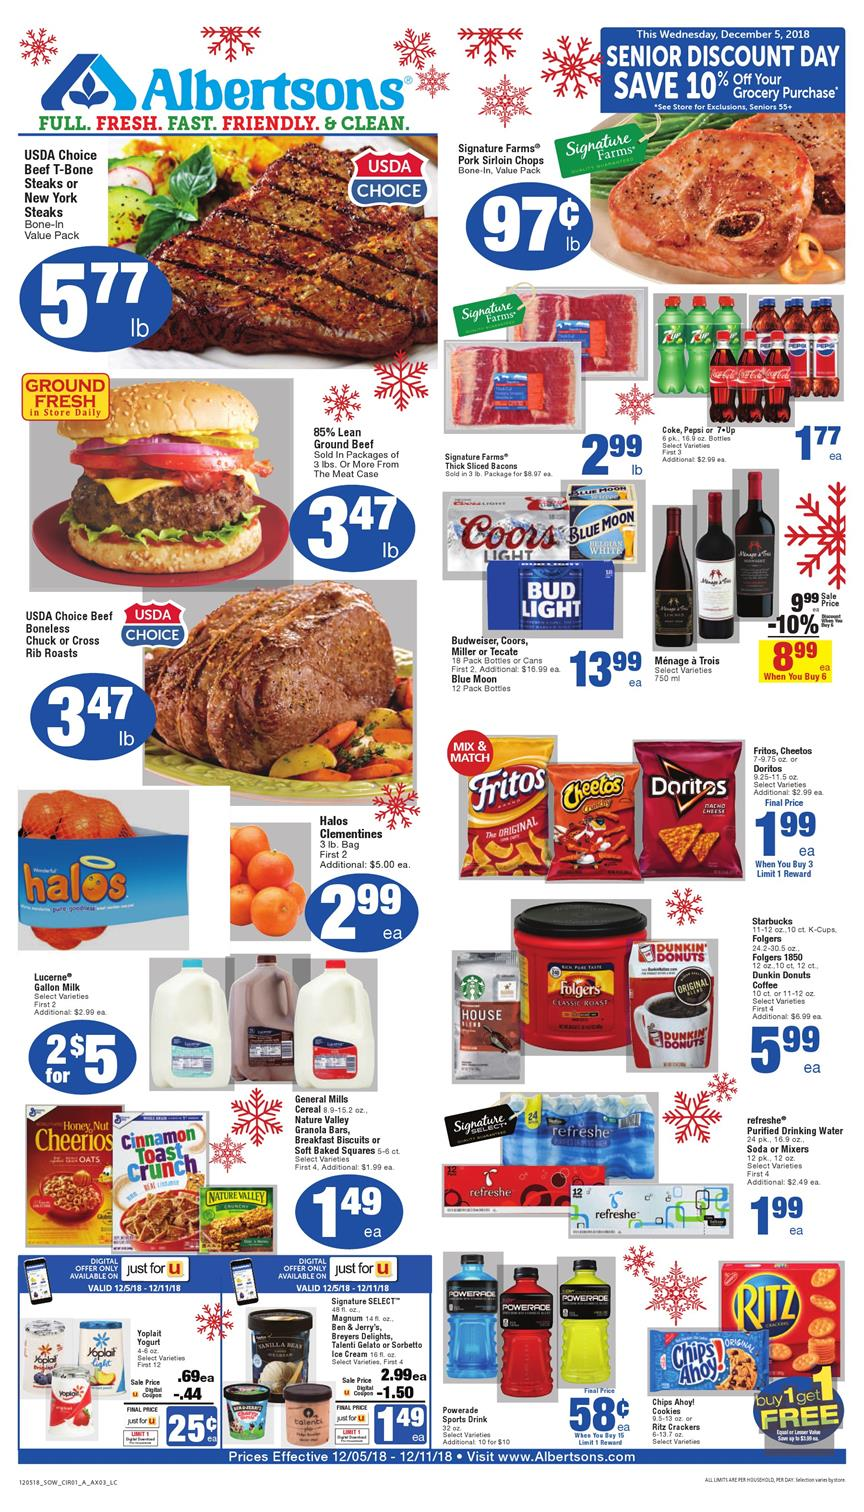 albertsons weekly ad dec 5 2018